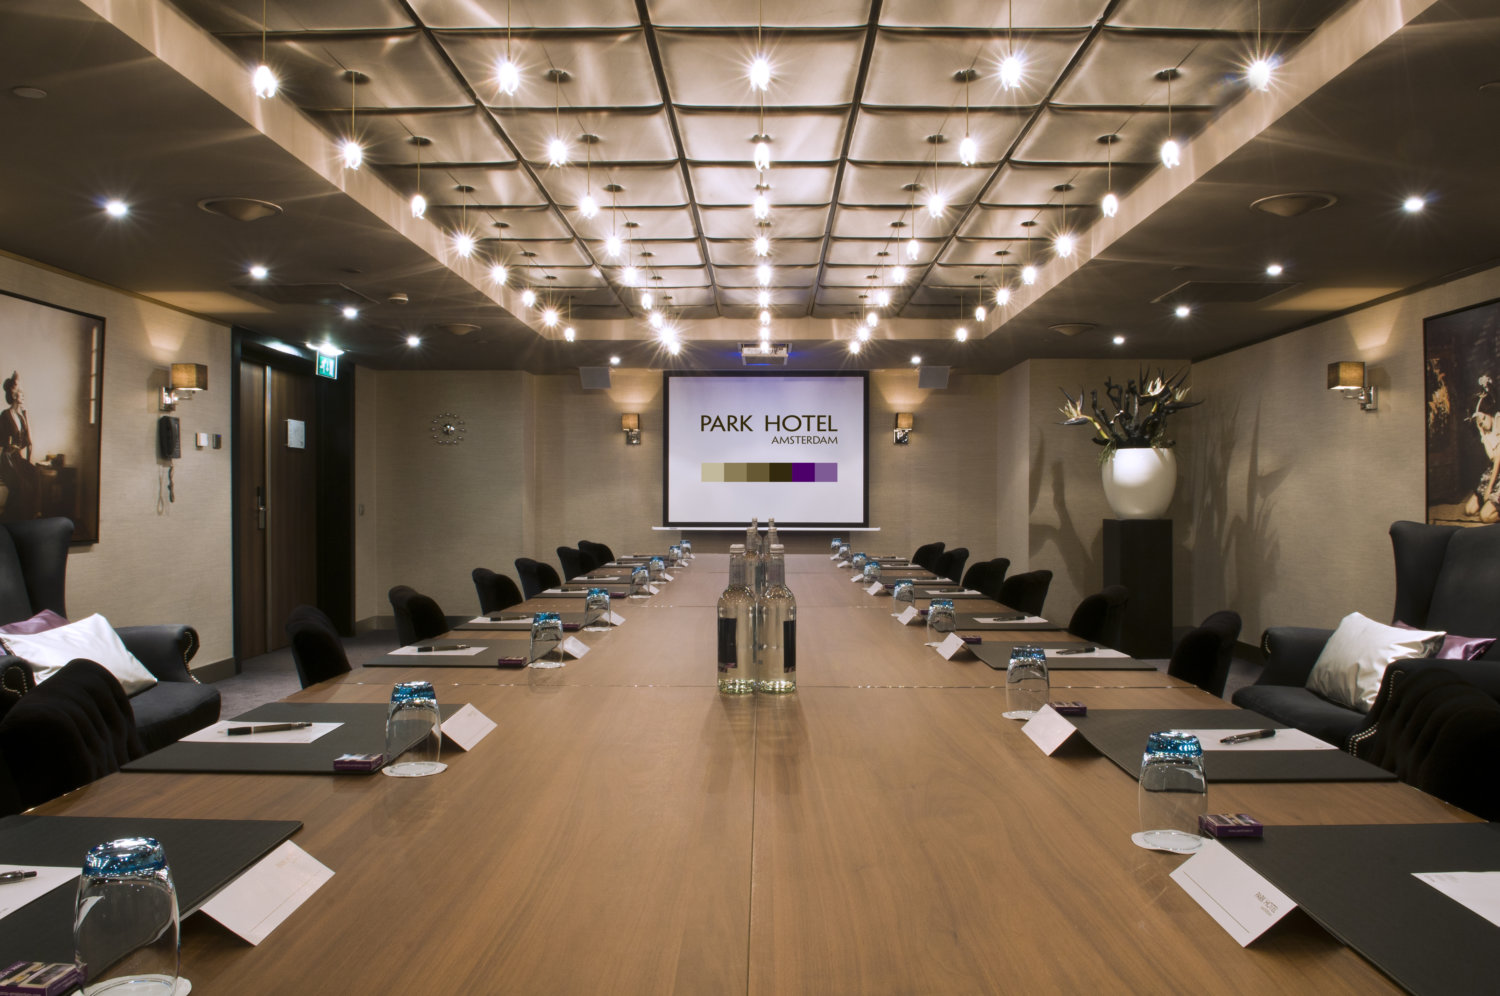 Park Hotel Amsterdam Tokyo Meeting Room - Meeting & Events